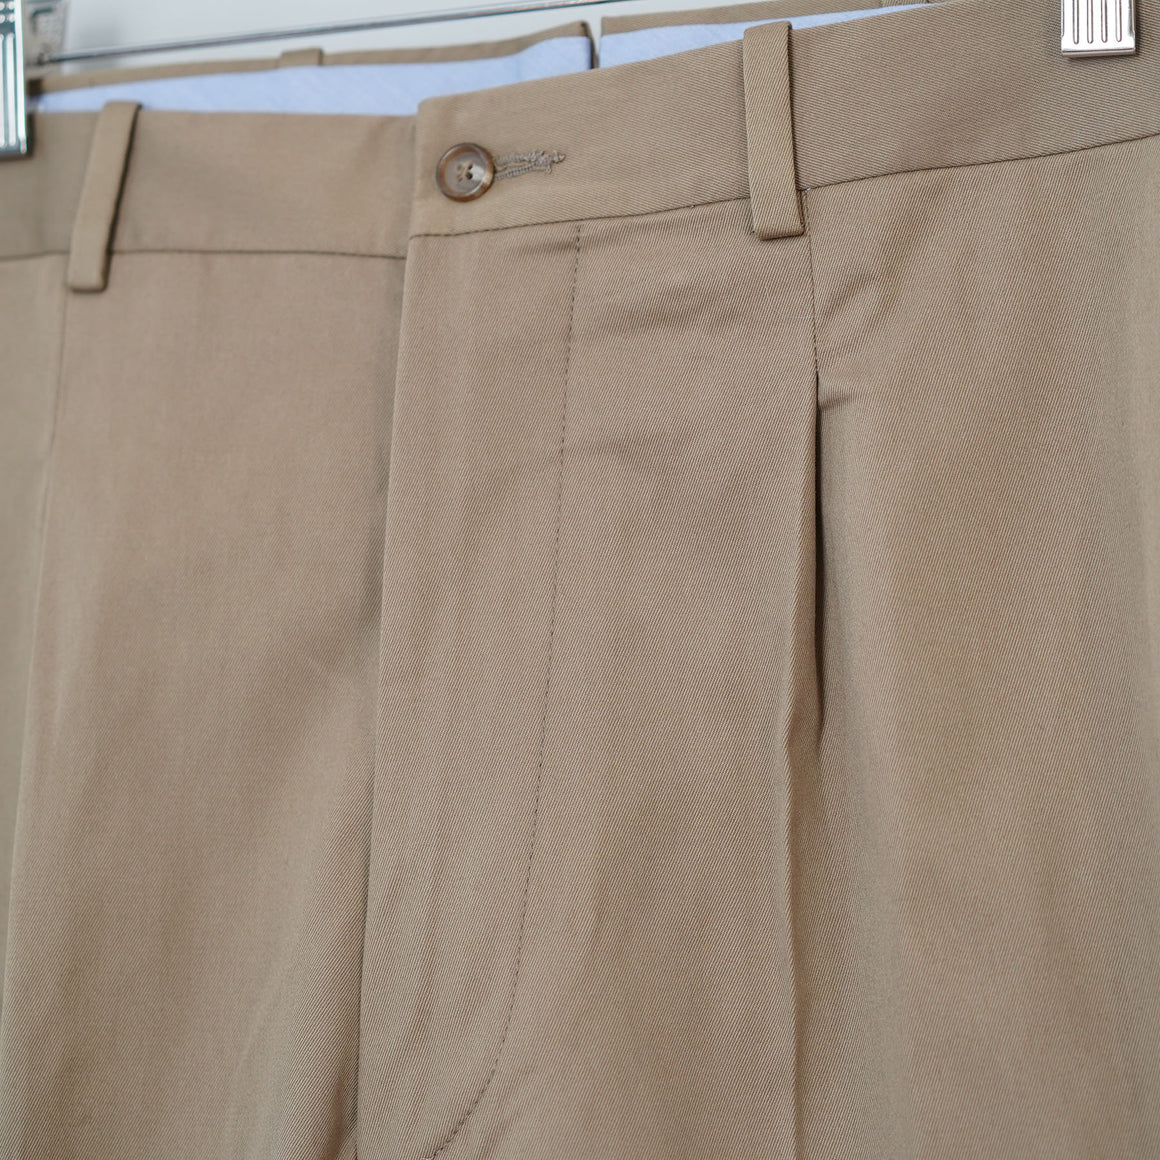 Sample Sale: Taylor Trouser in Khaki British Cotton, Size 35